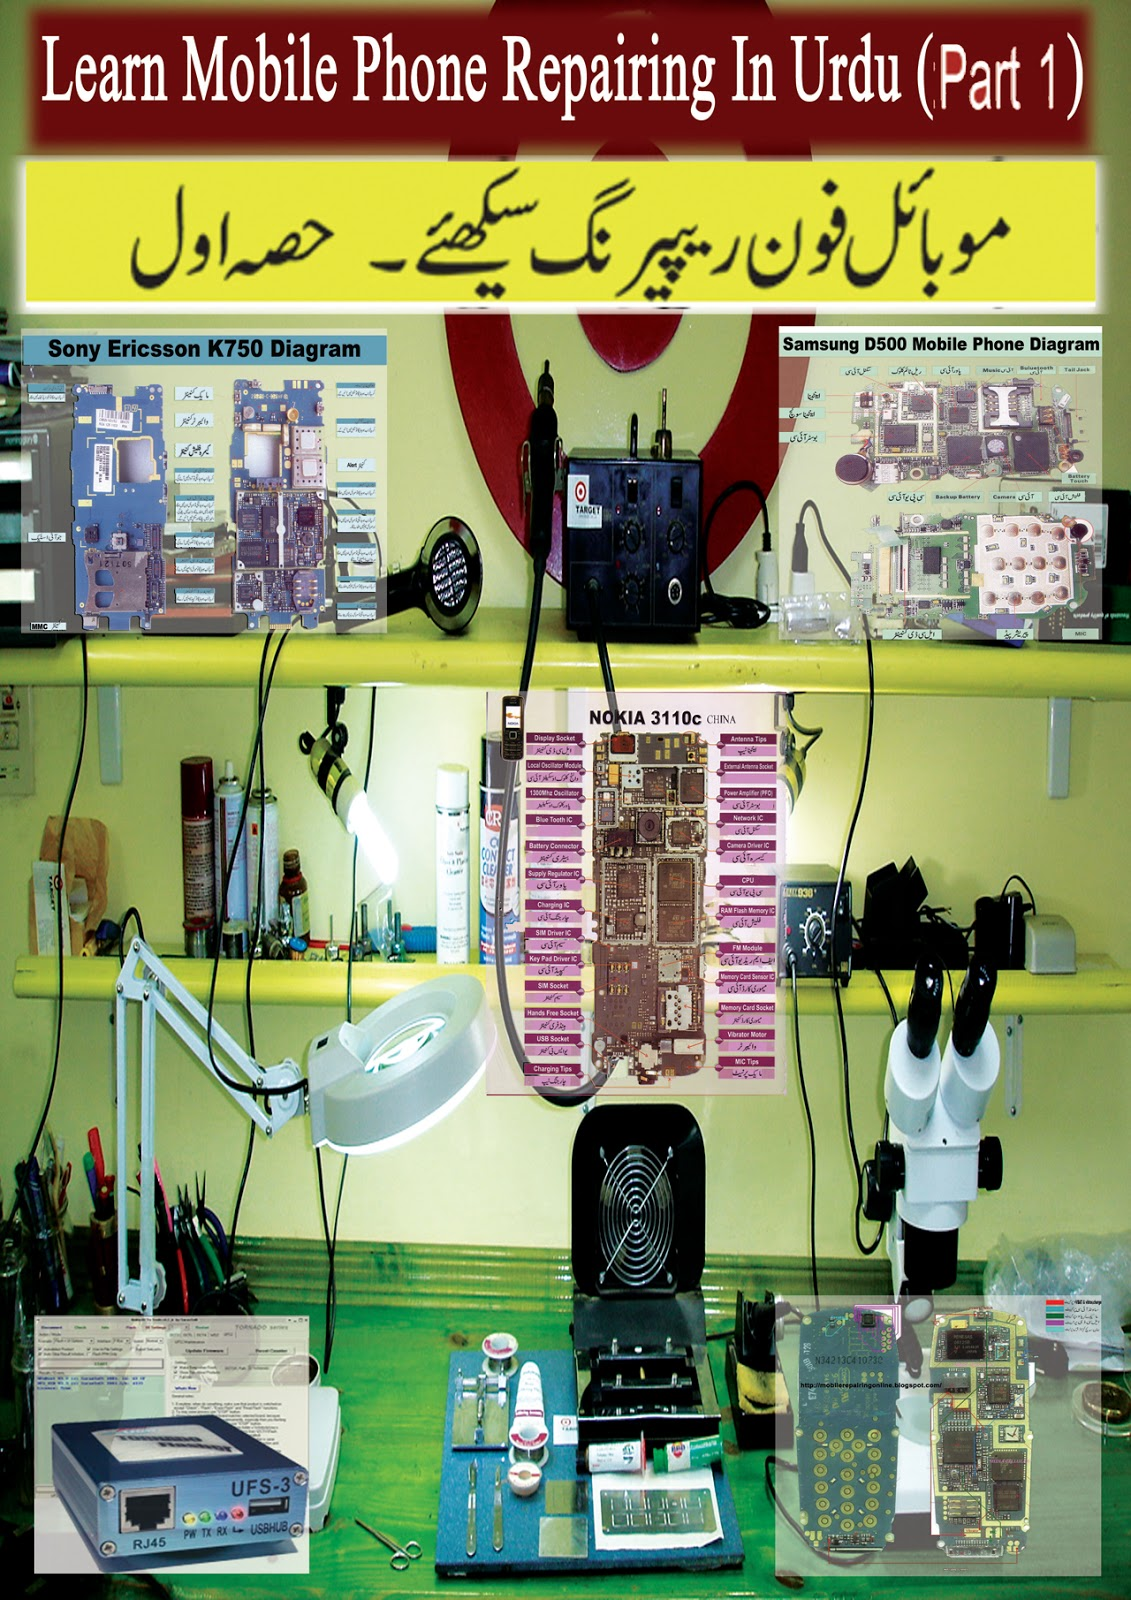 Mobile repairing diagram in urdu mobilerepairingonline cell phone diagram in hindi ccuart